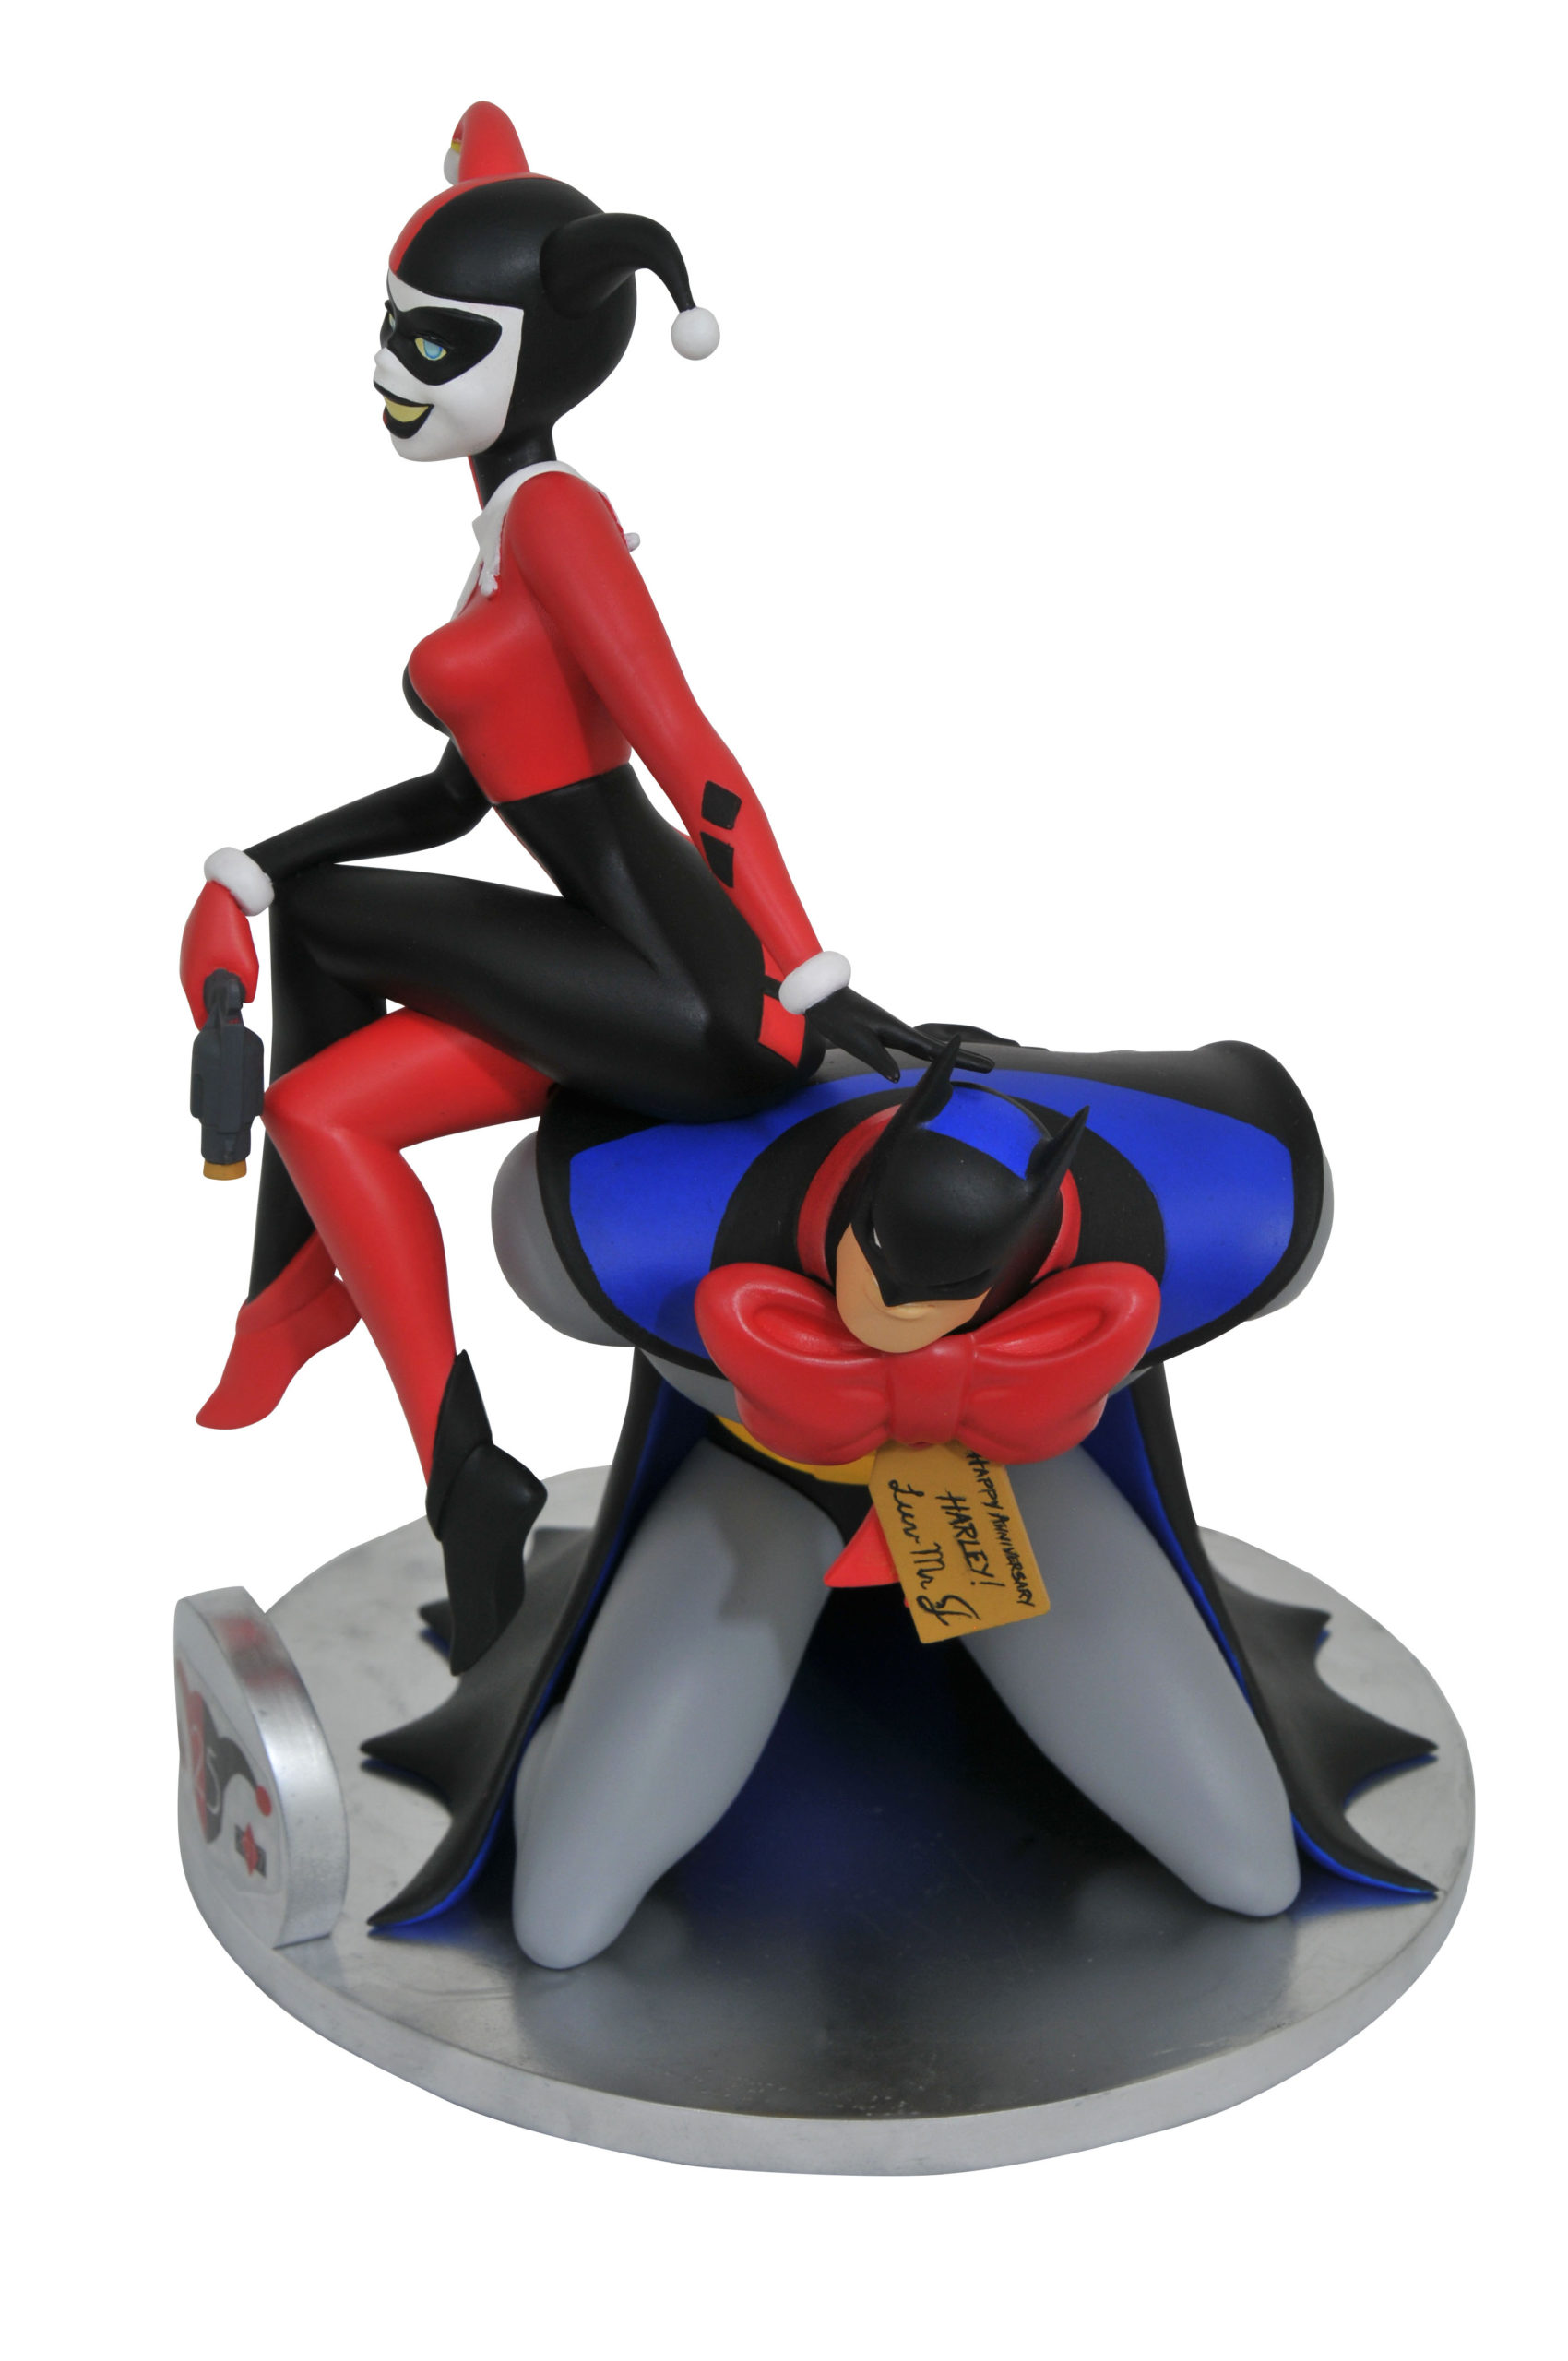 DC GALLERY BATMAN TAS 25TH ANNIV HARLEY QUINN DLX PVC FIGURE